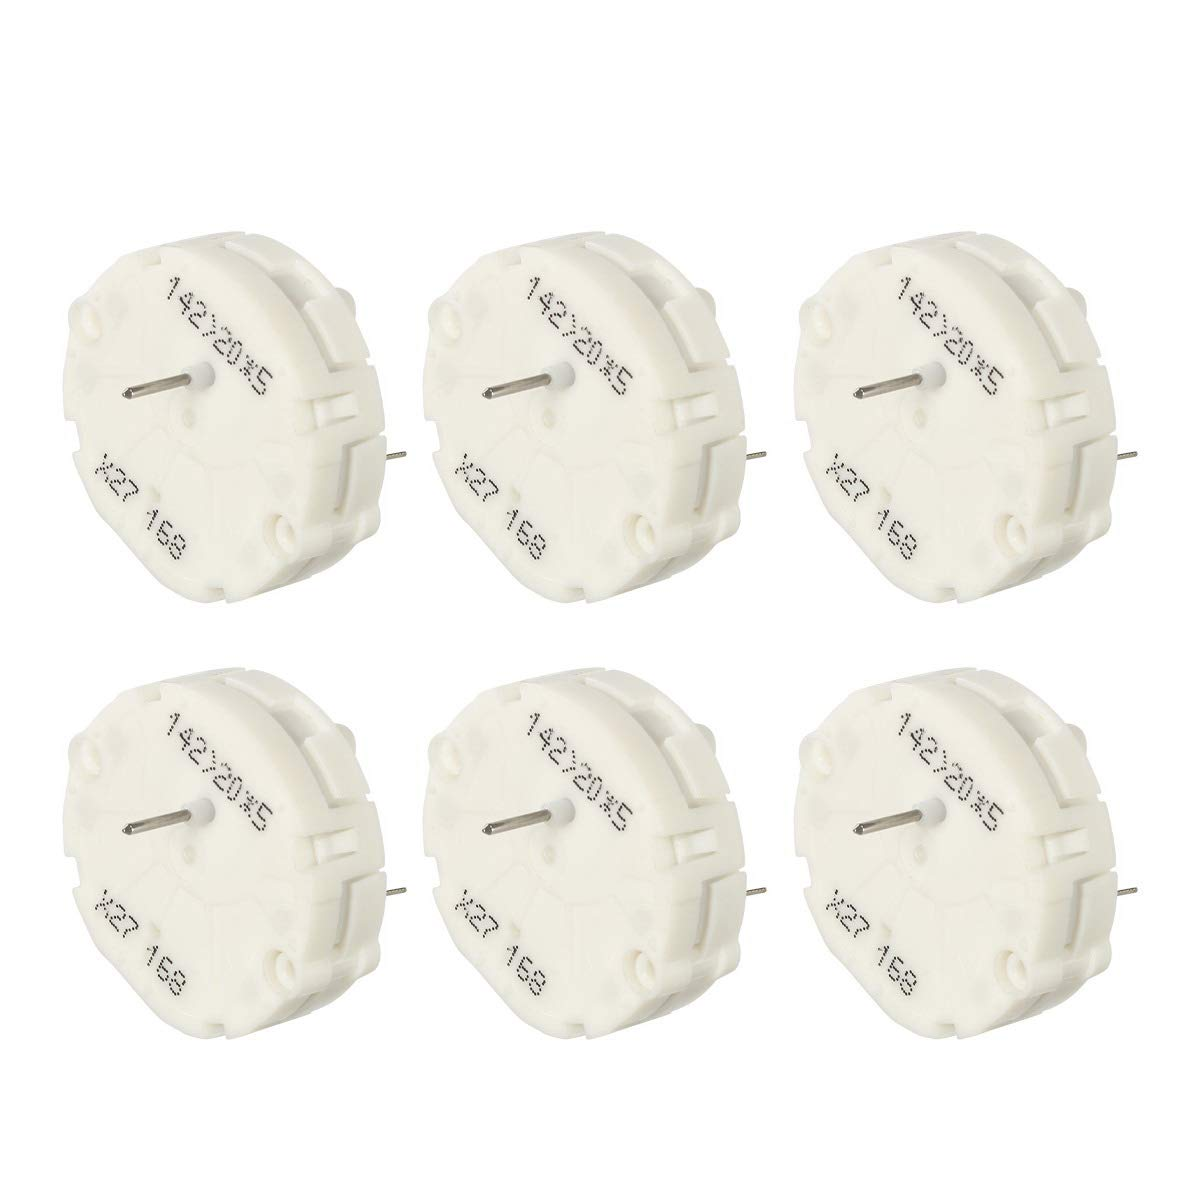 Partsam x27.168 27 168 Instrument Cluster Gauge Stepper Motor Repair Kit fit for 2003-2006 GM Chevy Buick GMC Pontiac Silverados Tahoes -6Pcs X27168